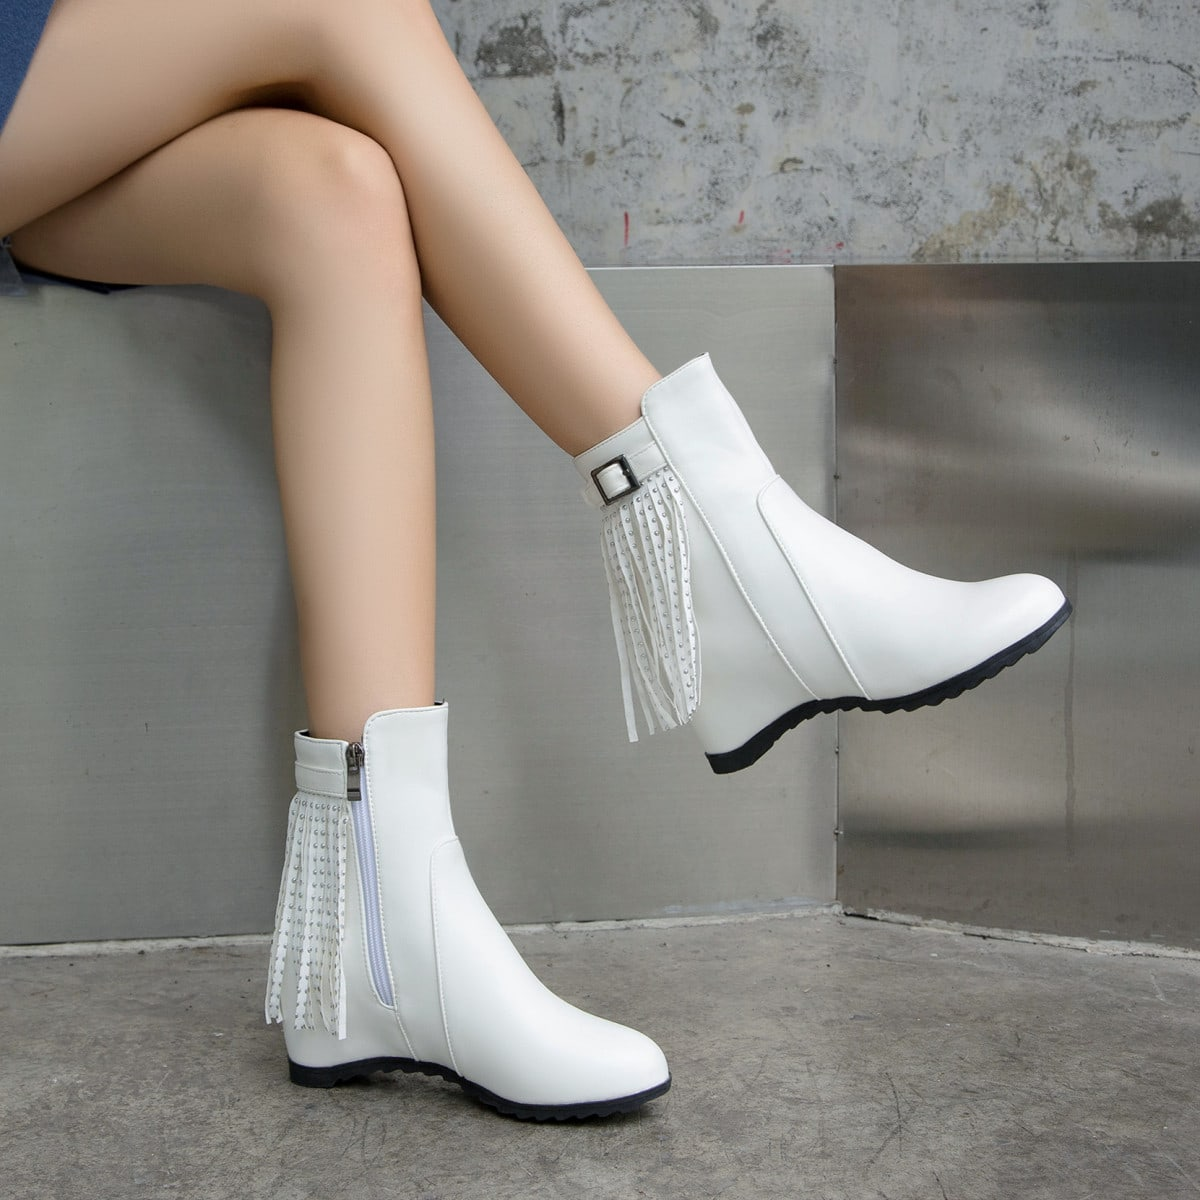 Fringe Decor Side Zipper Hidden Heeled Boots, SHEIN  - buy with discount